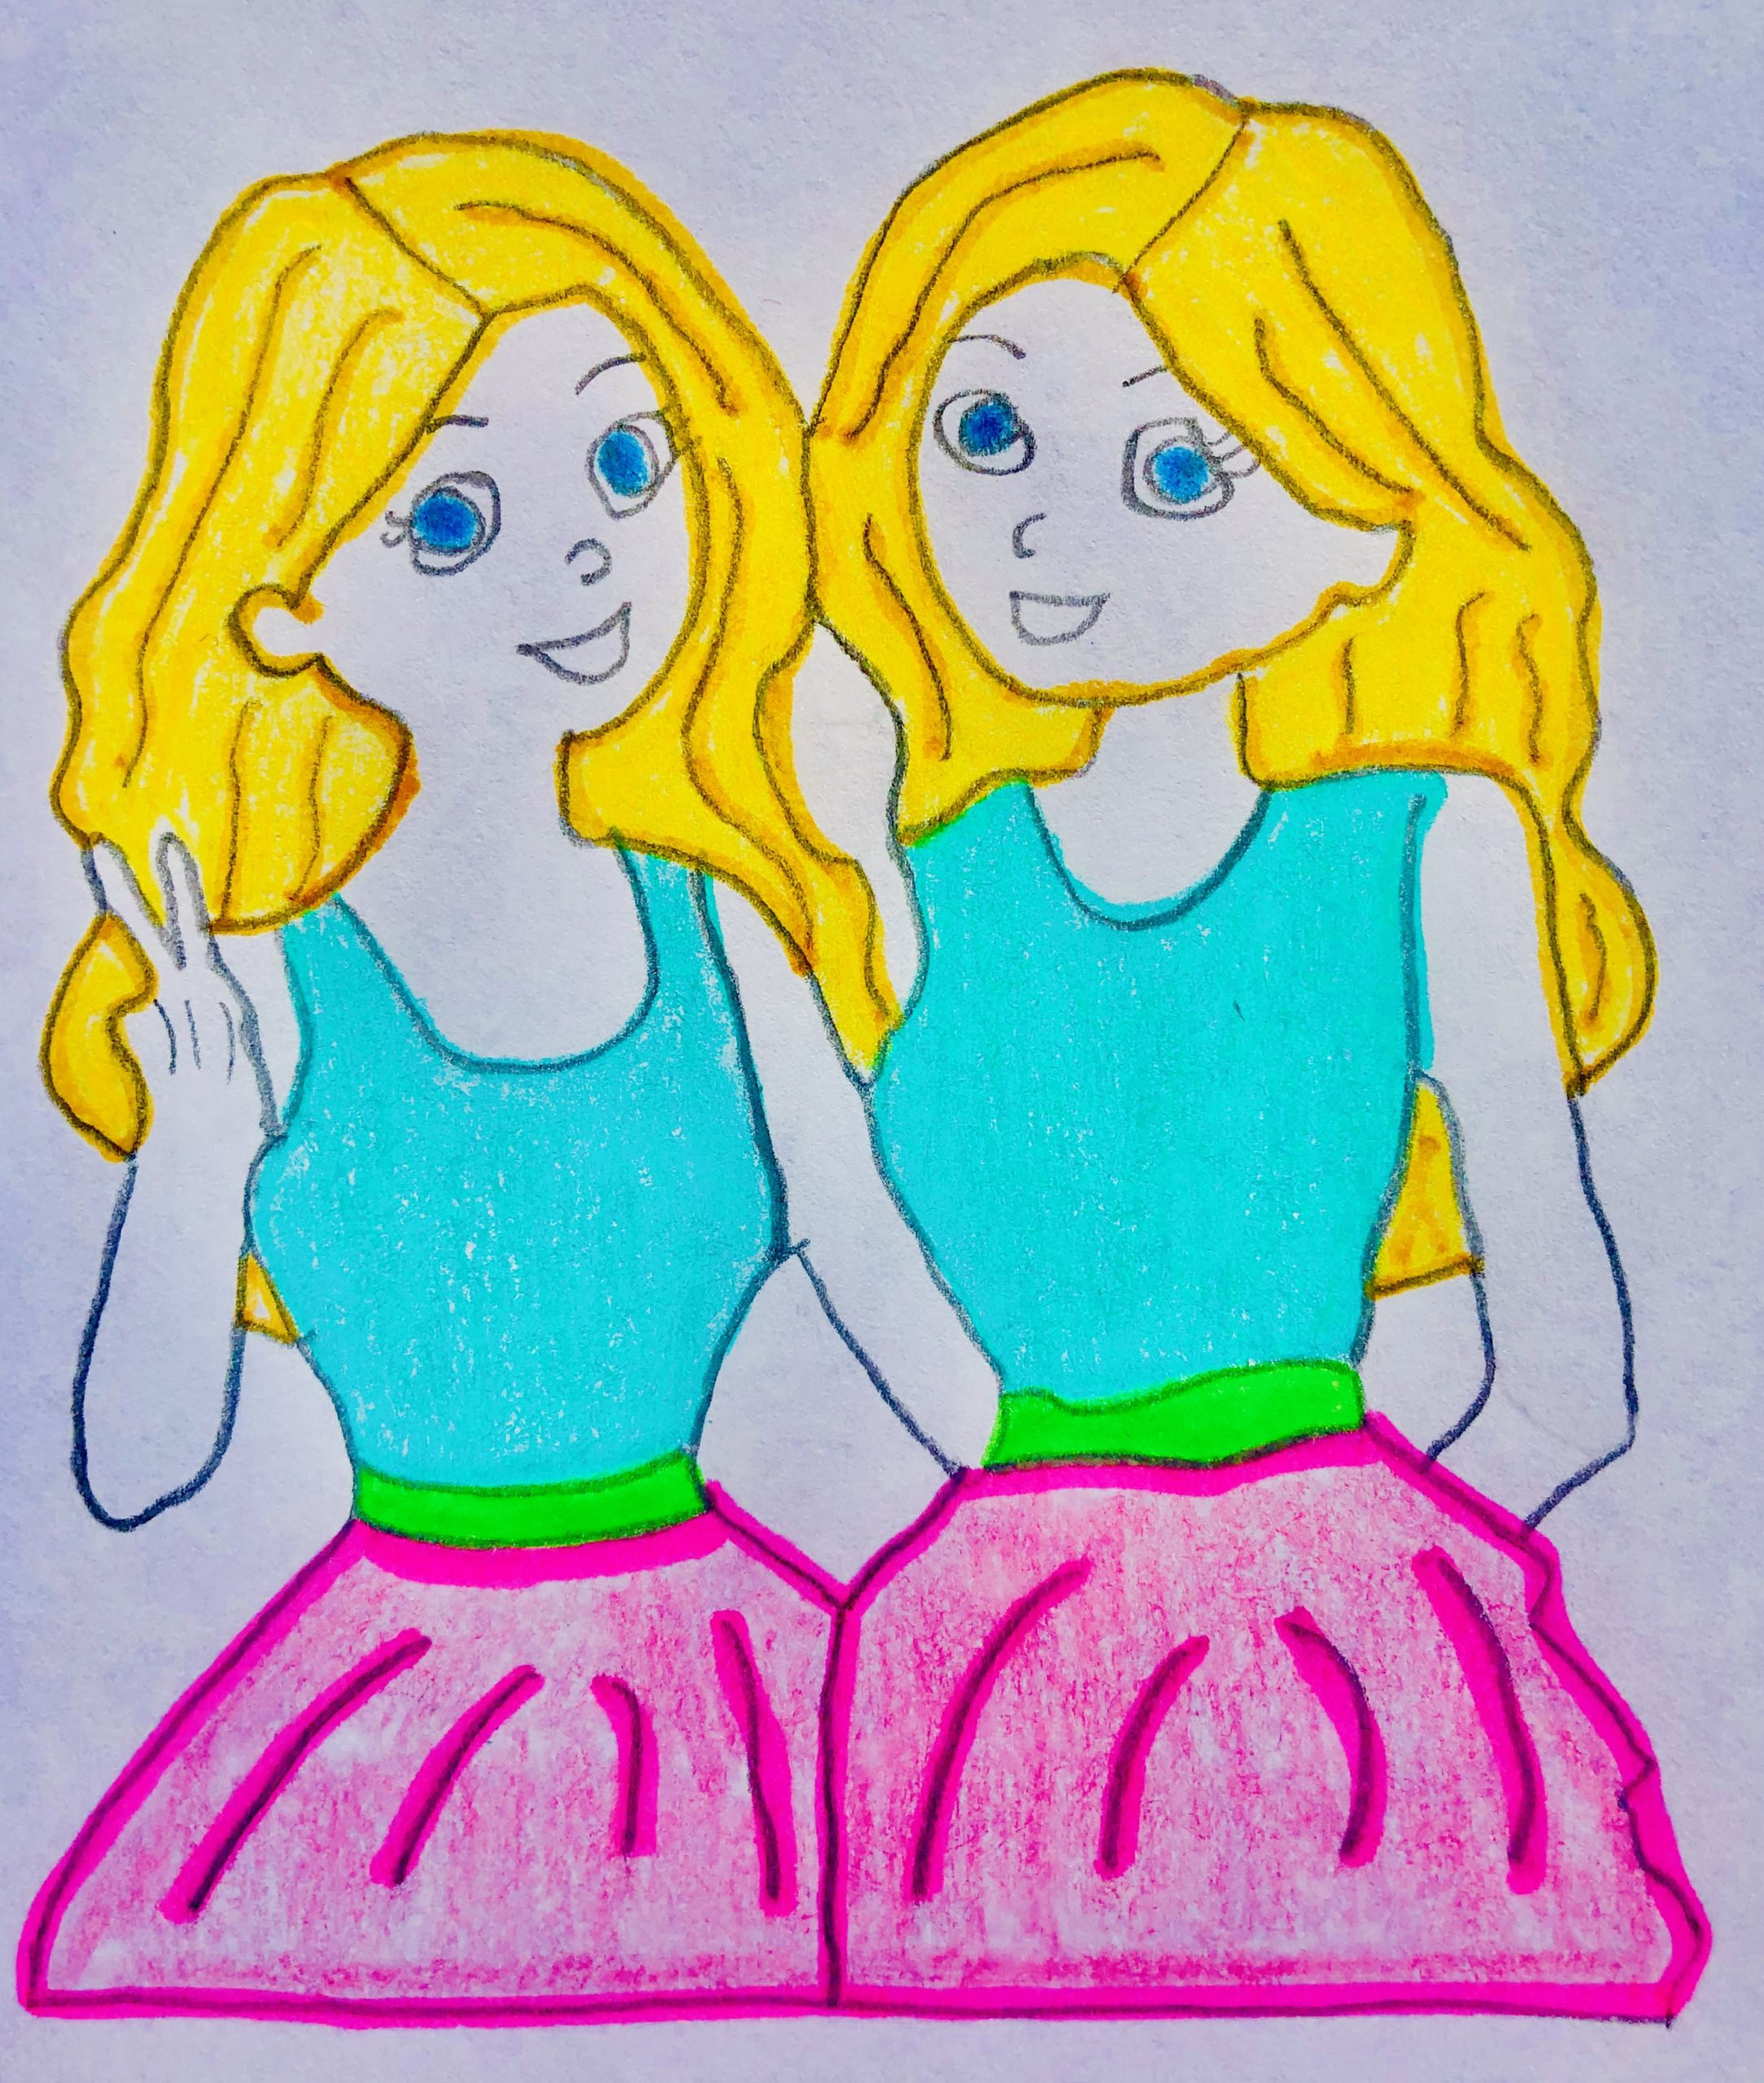 Blonde haired Twins hugging. They have matching teal tank tops and pink skirts on. Short Story for kids, Is that Me?